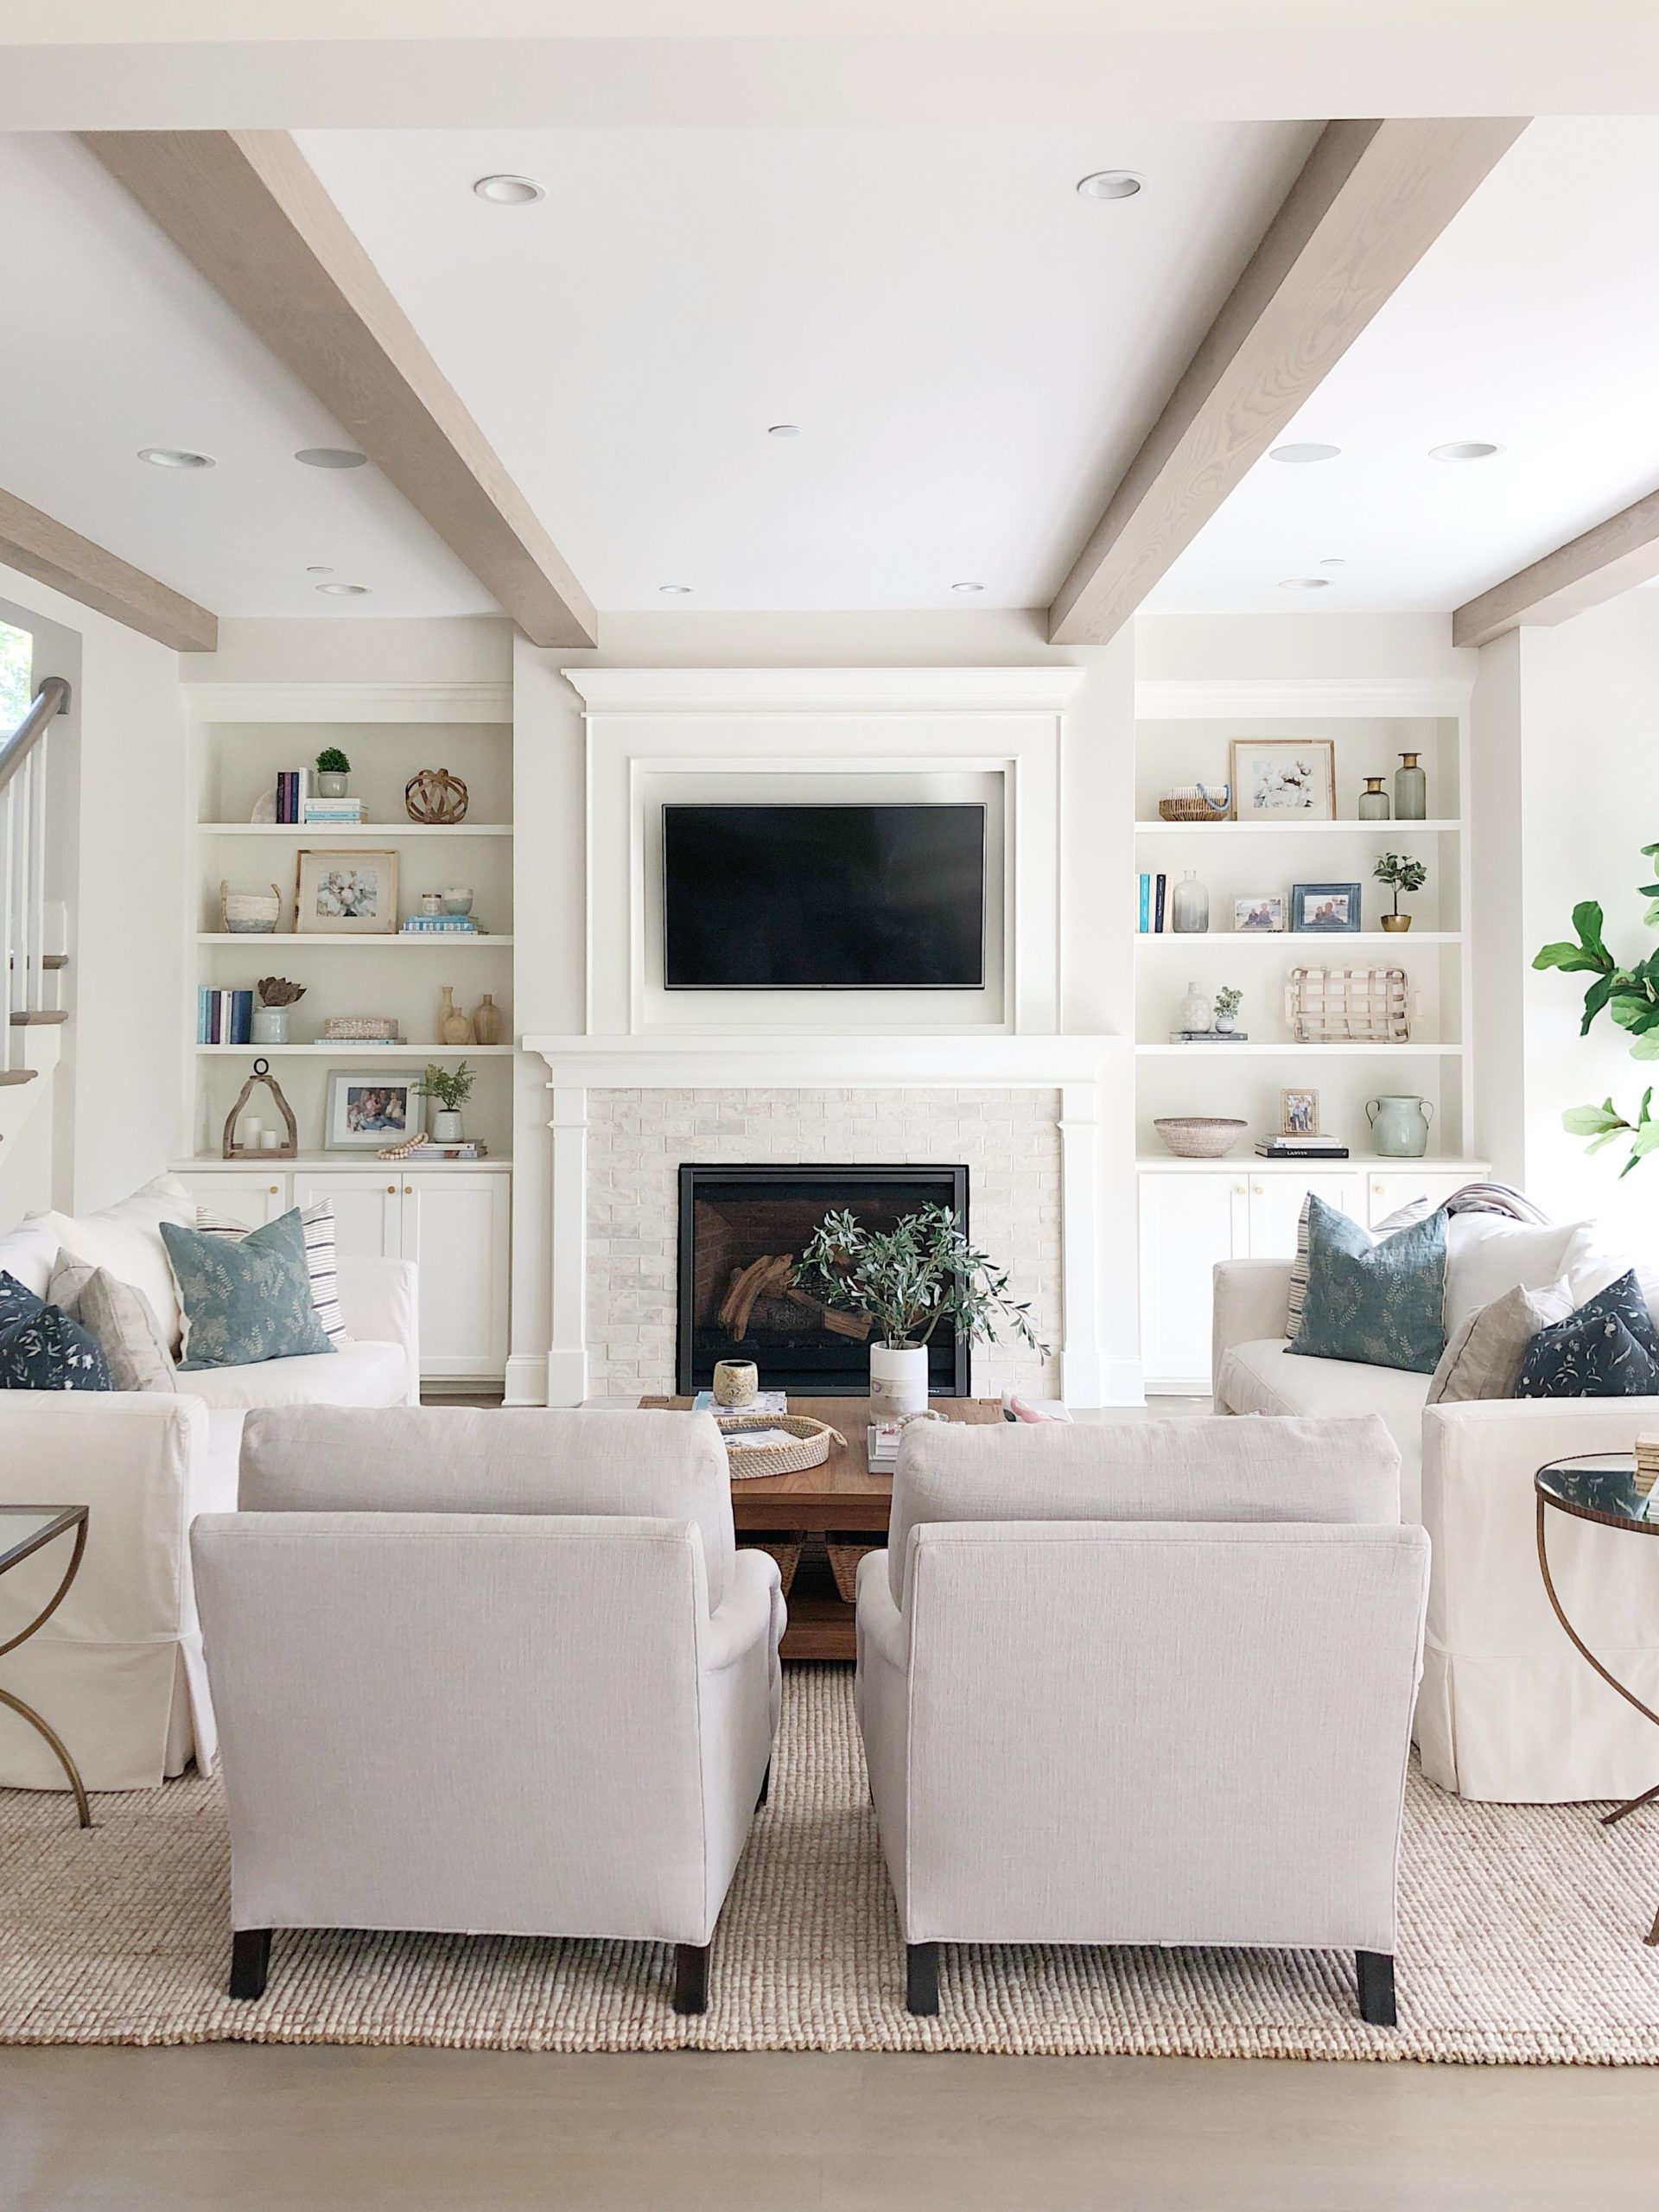 Pin By Marissa M Craig On New House In 2020 White